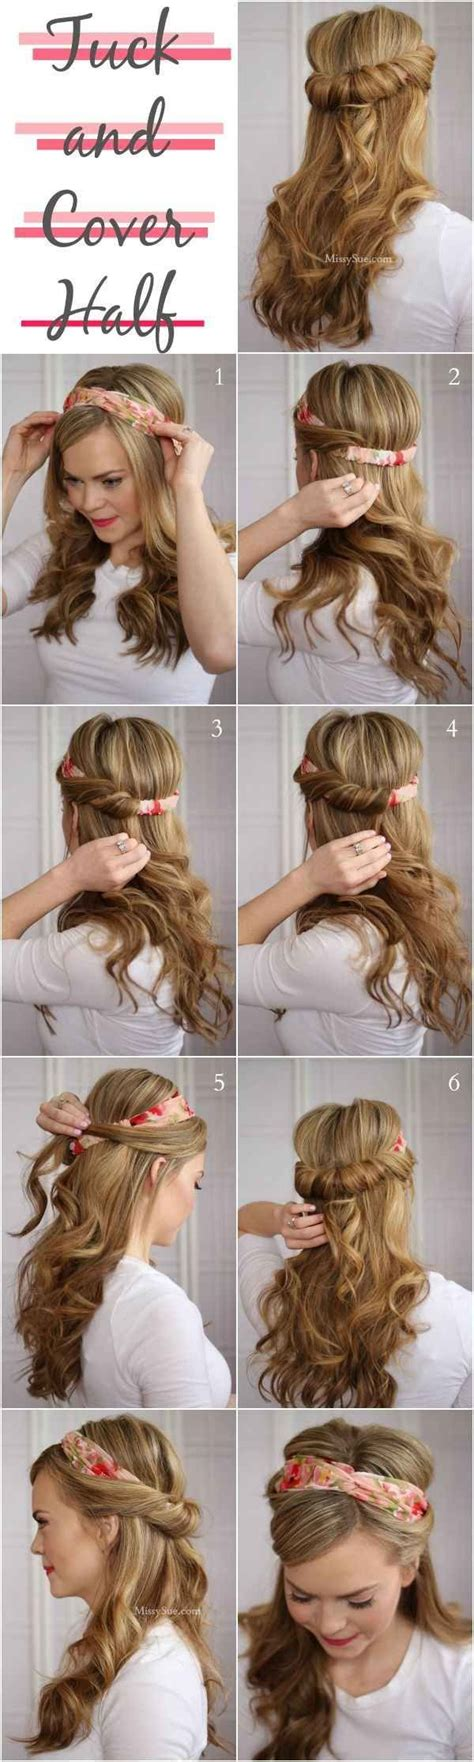 hairstyle tutorials 10 easy hairstyle tutorials for long hair london beep